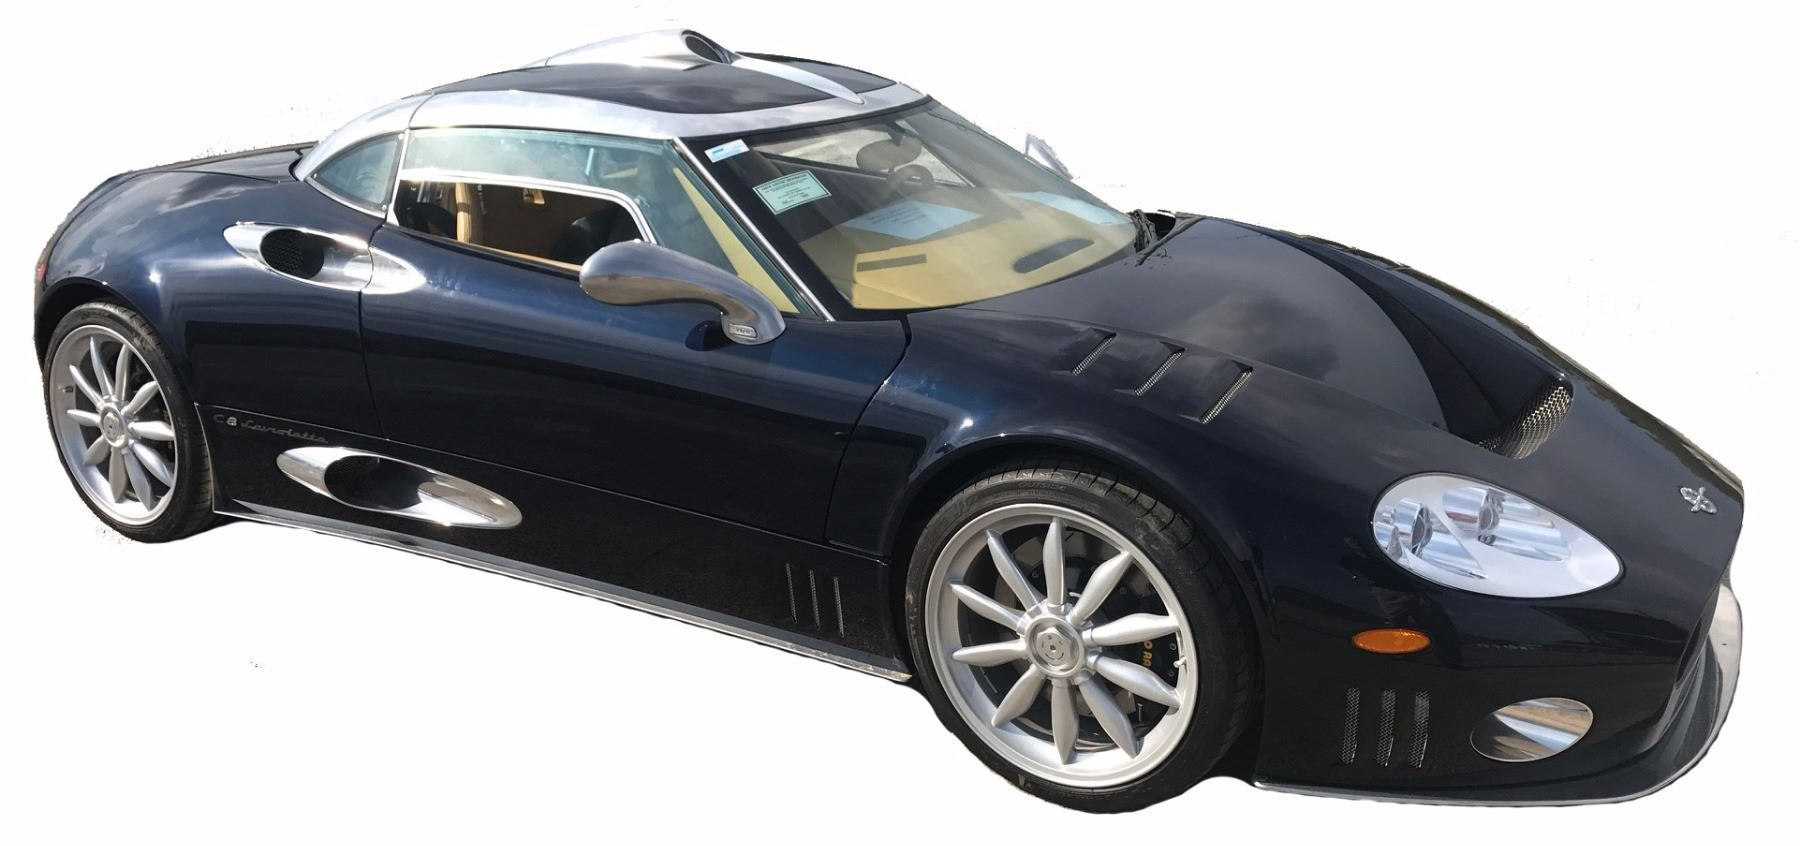 Video; Image 1  2009 Spyker C8 Laviolette Holland with Butterfly Doors; 4.2L 400HP V8 ...  sc 1 st  iCollector.com & 2009 Spyker C8 Laviolette Holland with Butterfly Doors; 4.2L 400HP ...